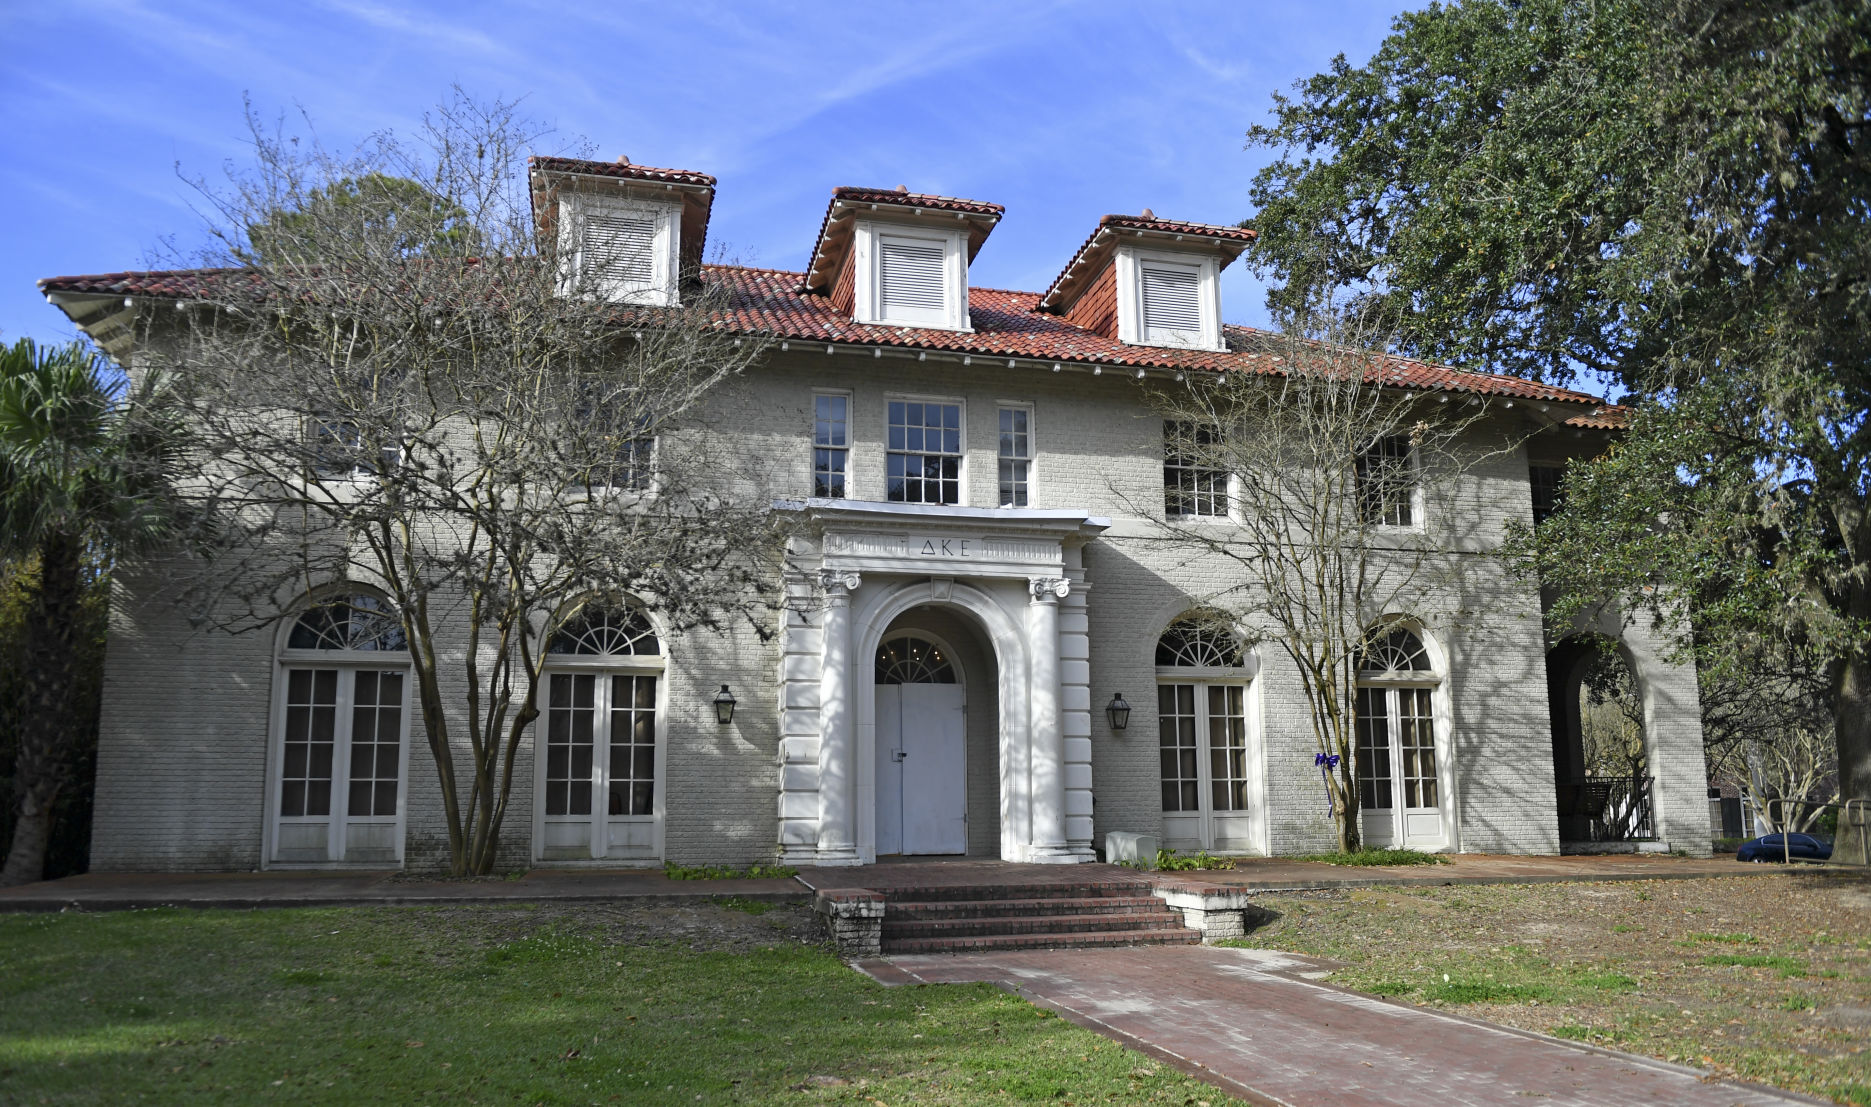 Which LSU fraternities do people complain about most? Search our database